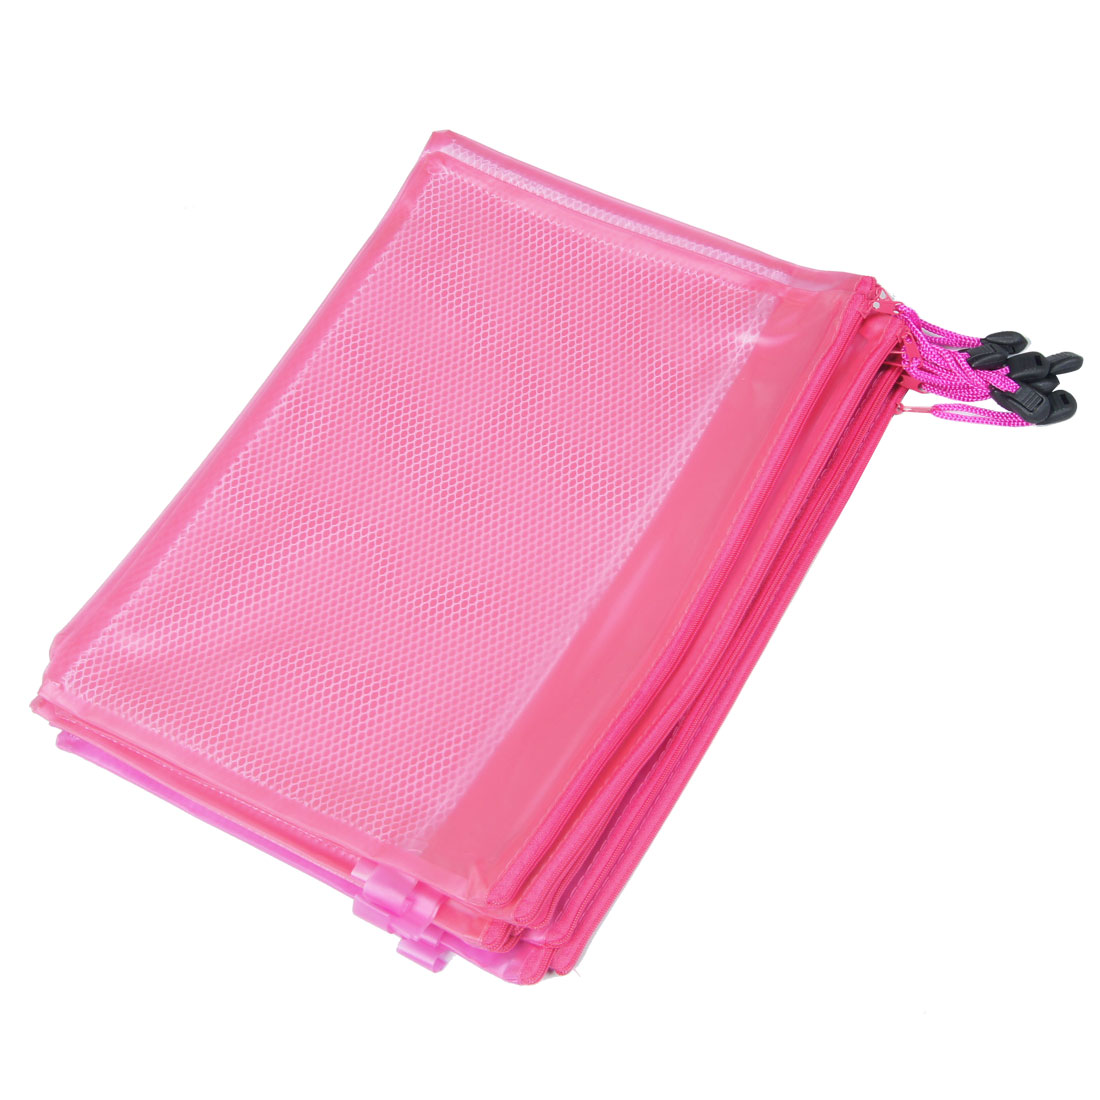 10 Pcs Two Compartments A4 Paper Zippered PVC File Folder Bags Fuchsia